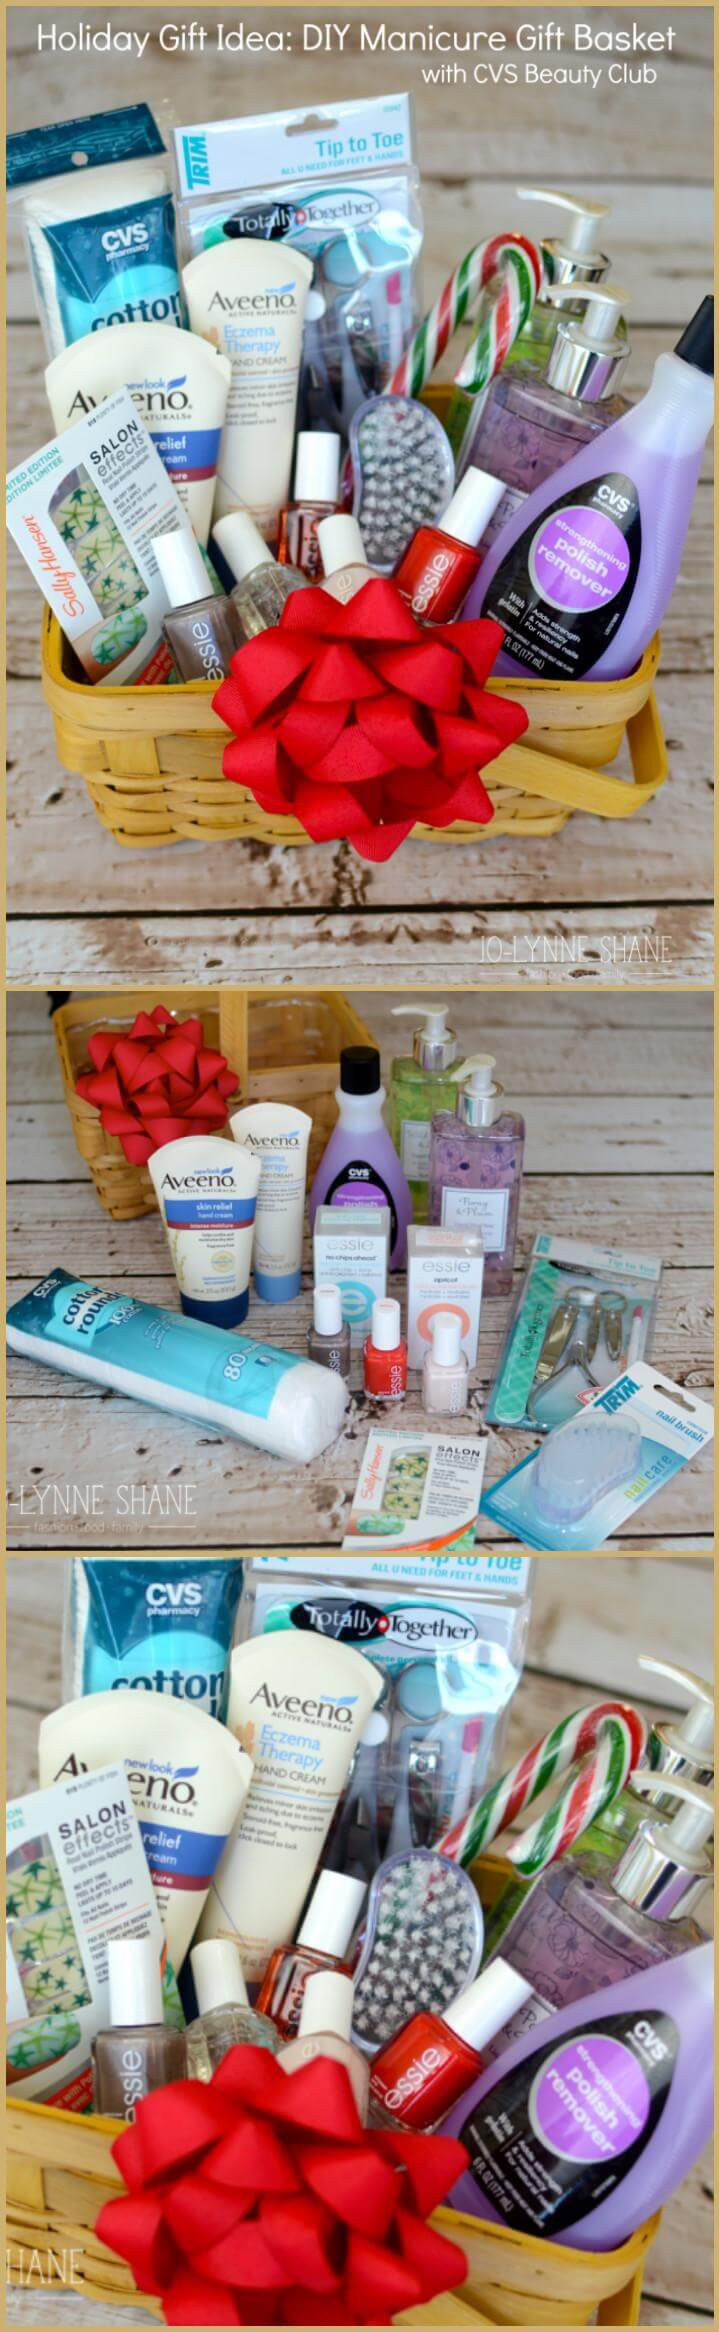 Best ideas about Cheap Homemade Gift Basket Ideas . Save or Pin 70 Inexpensive DIY Gift Basket Ideas DIY Gifts Page Now.